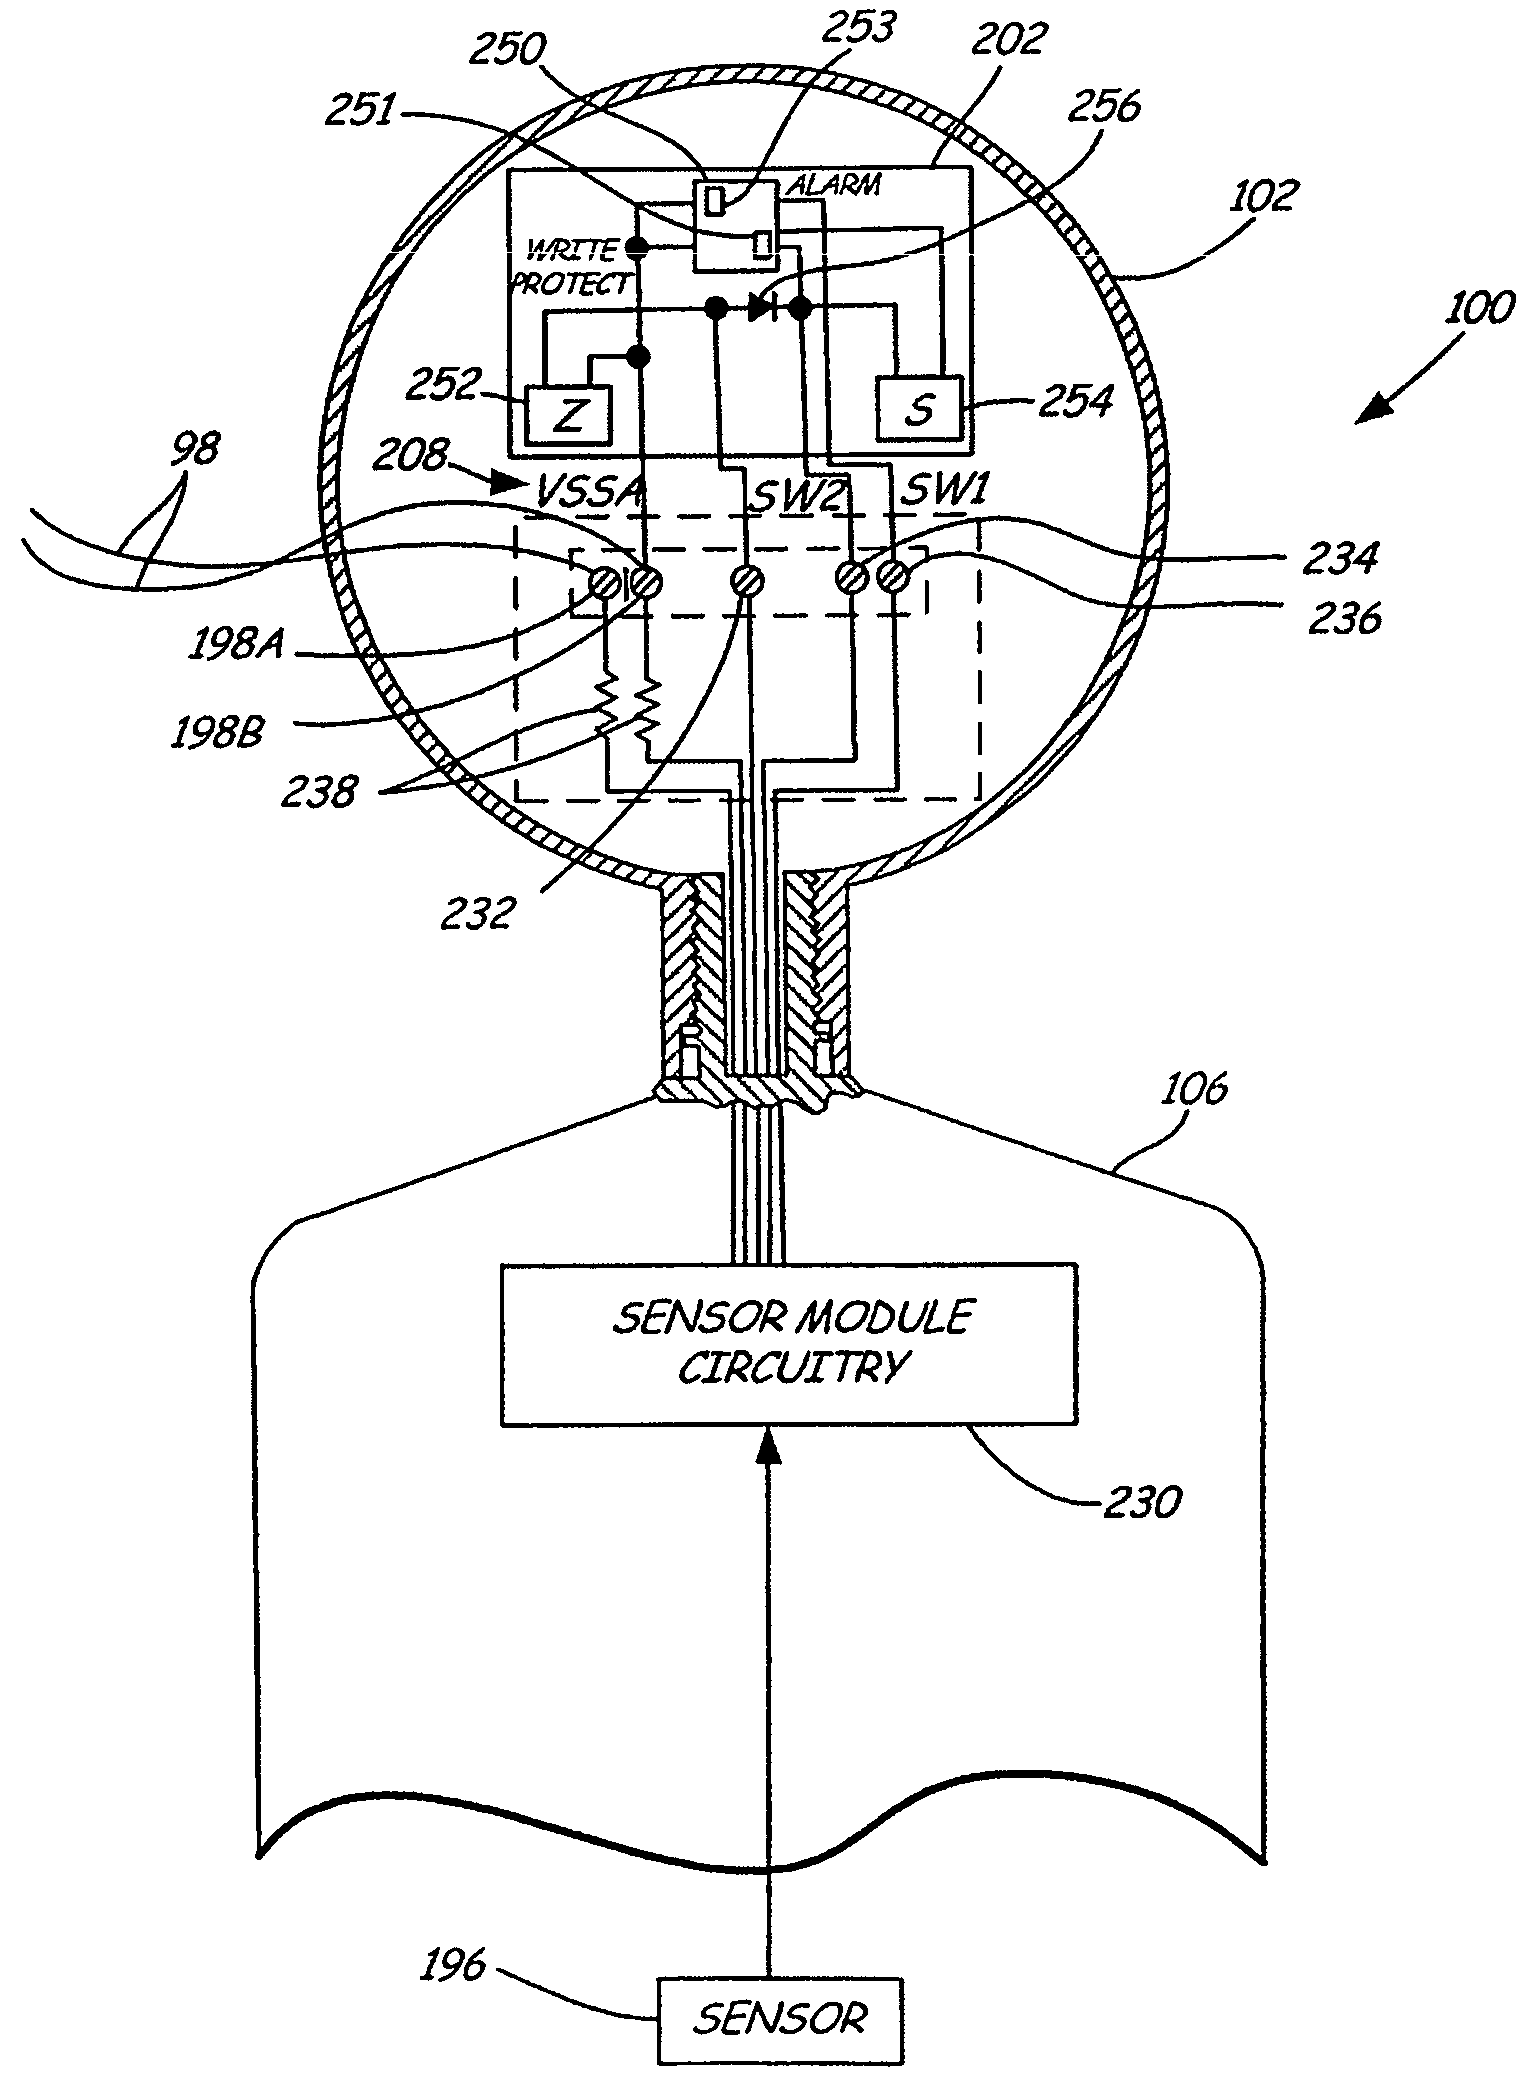 Patent Us7525419 - Transmitter With Removable Local Operator Interface